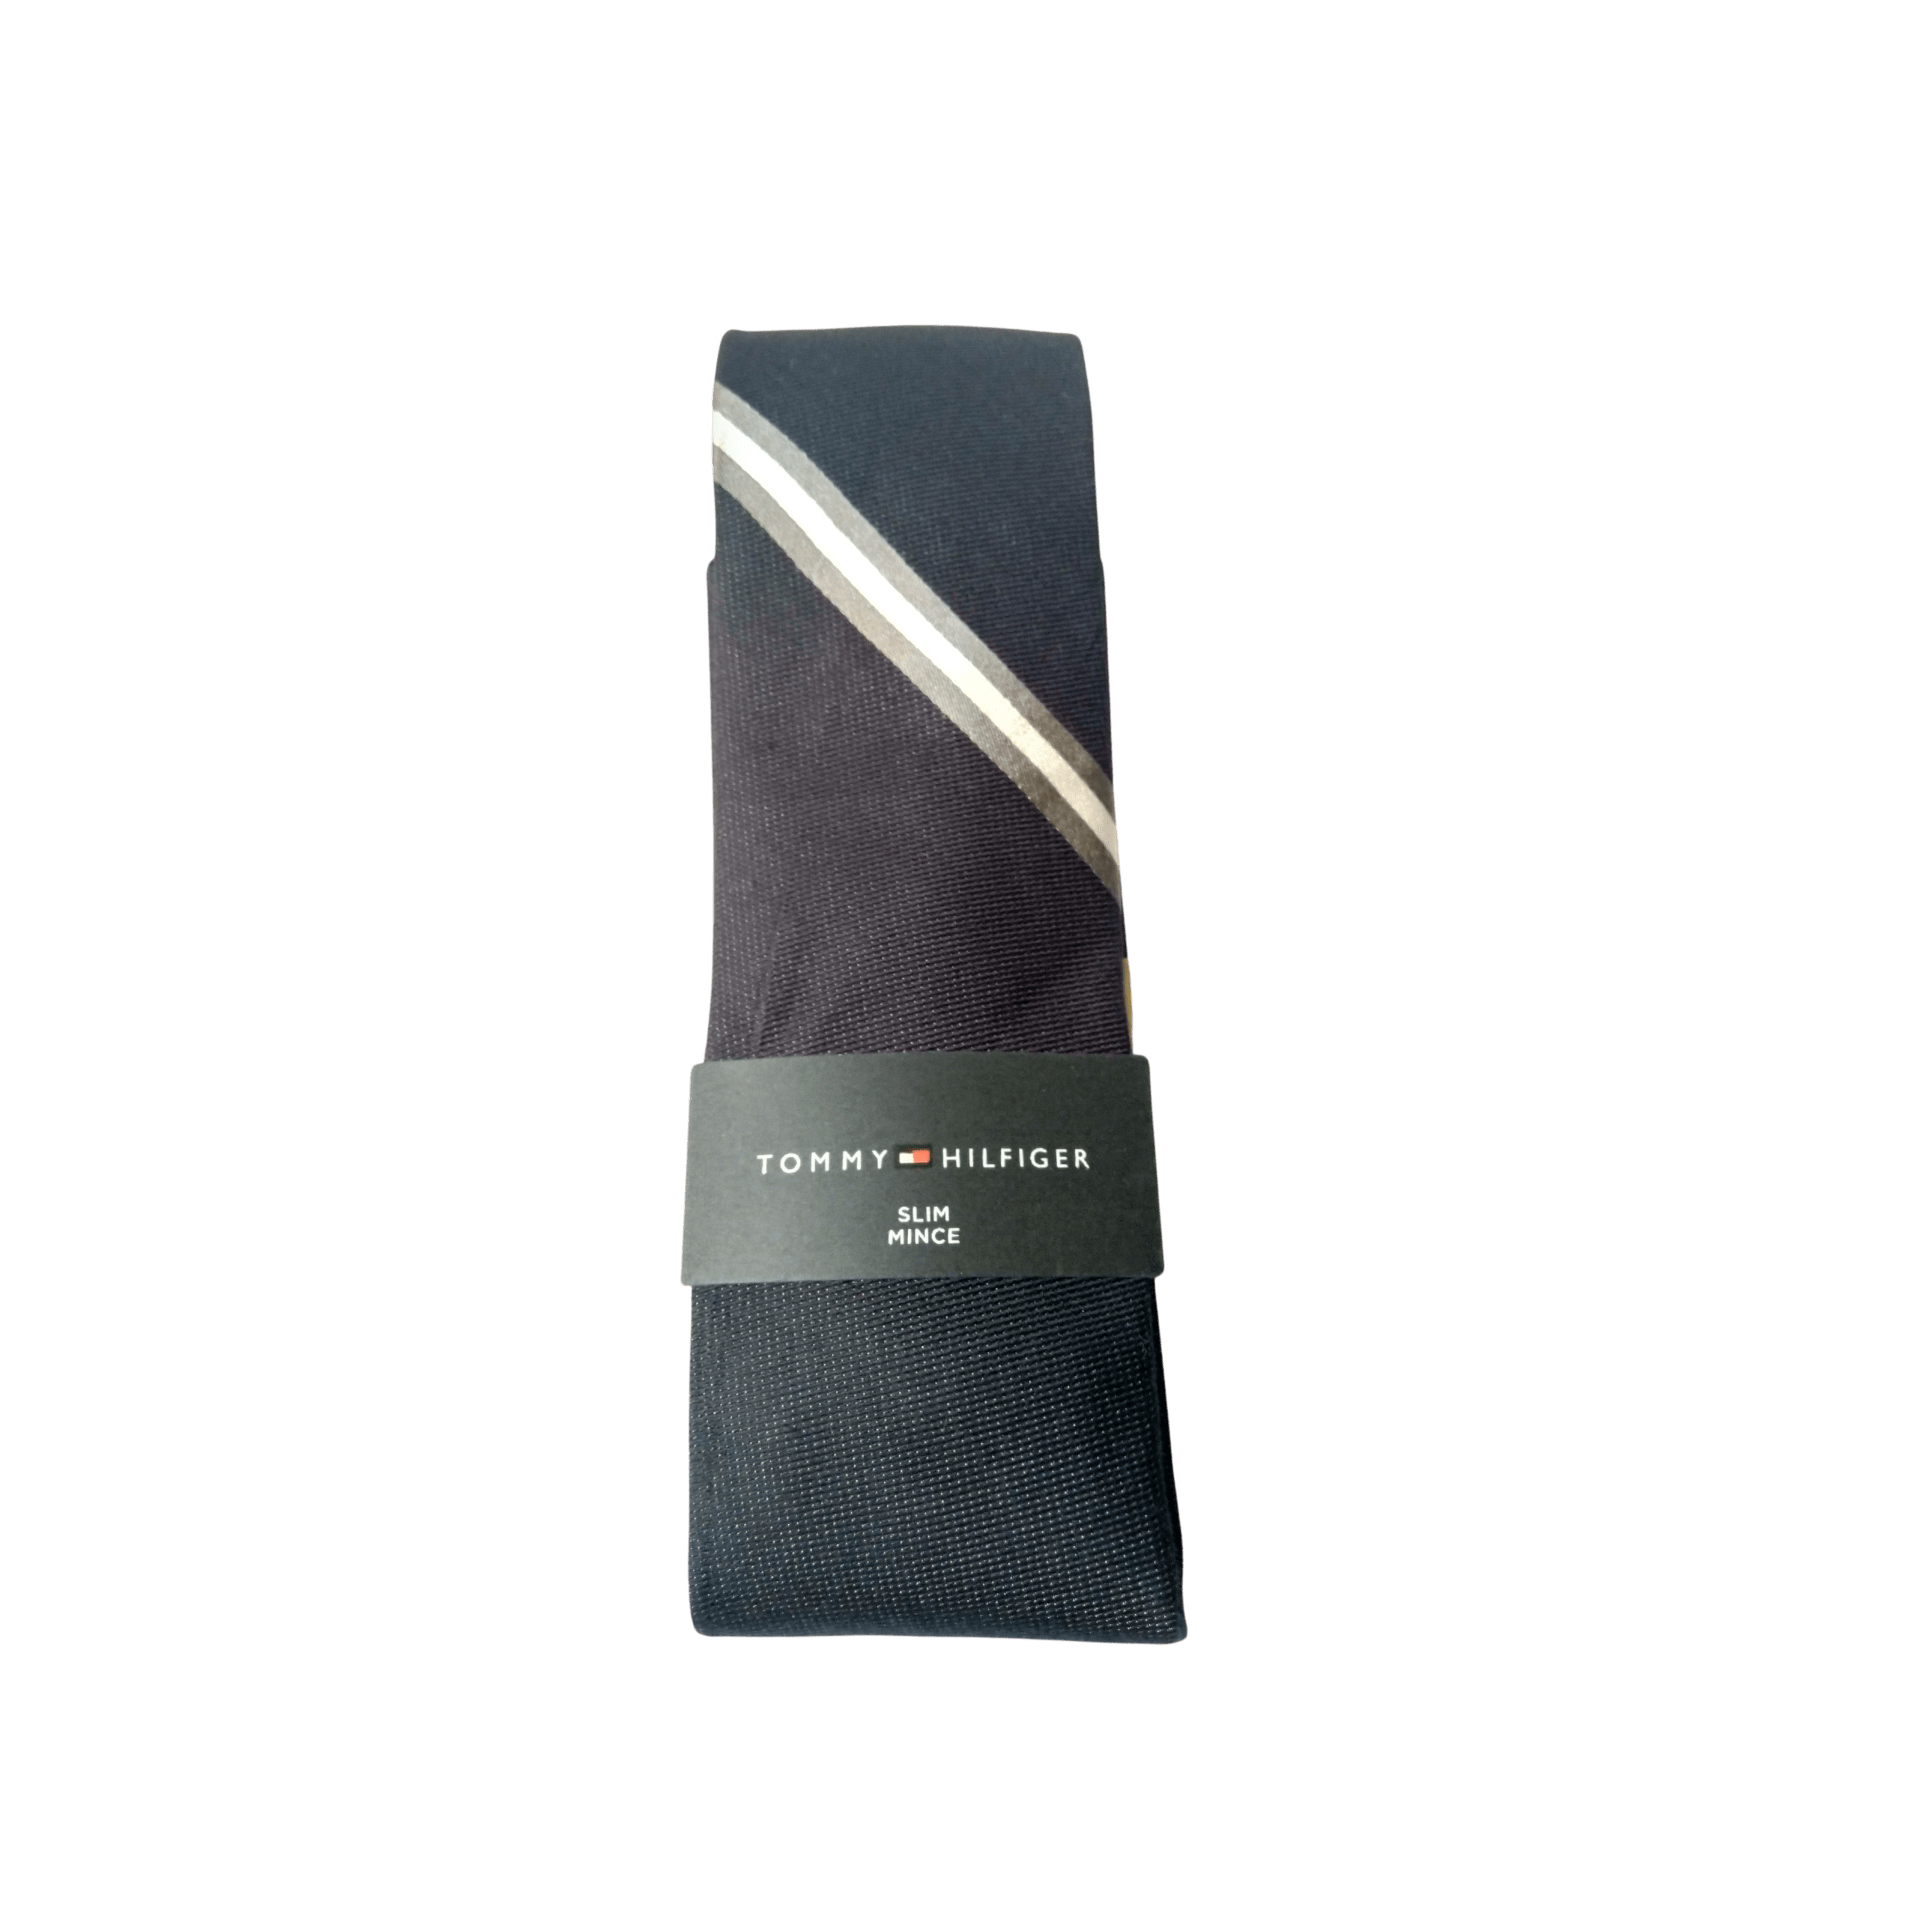 Tommy Hilfiger Classic Navy Slim Mince Neck Tie - MGworld